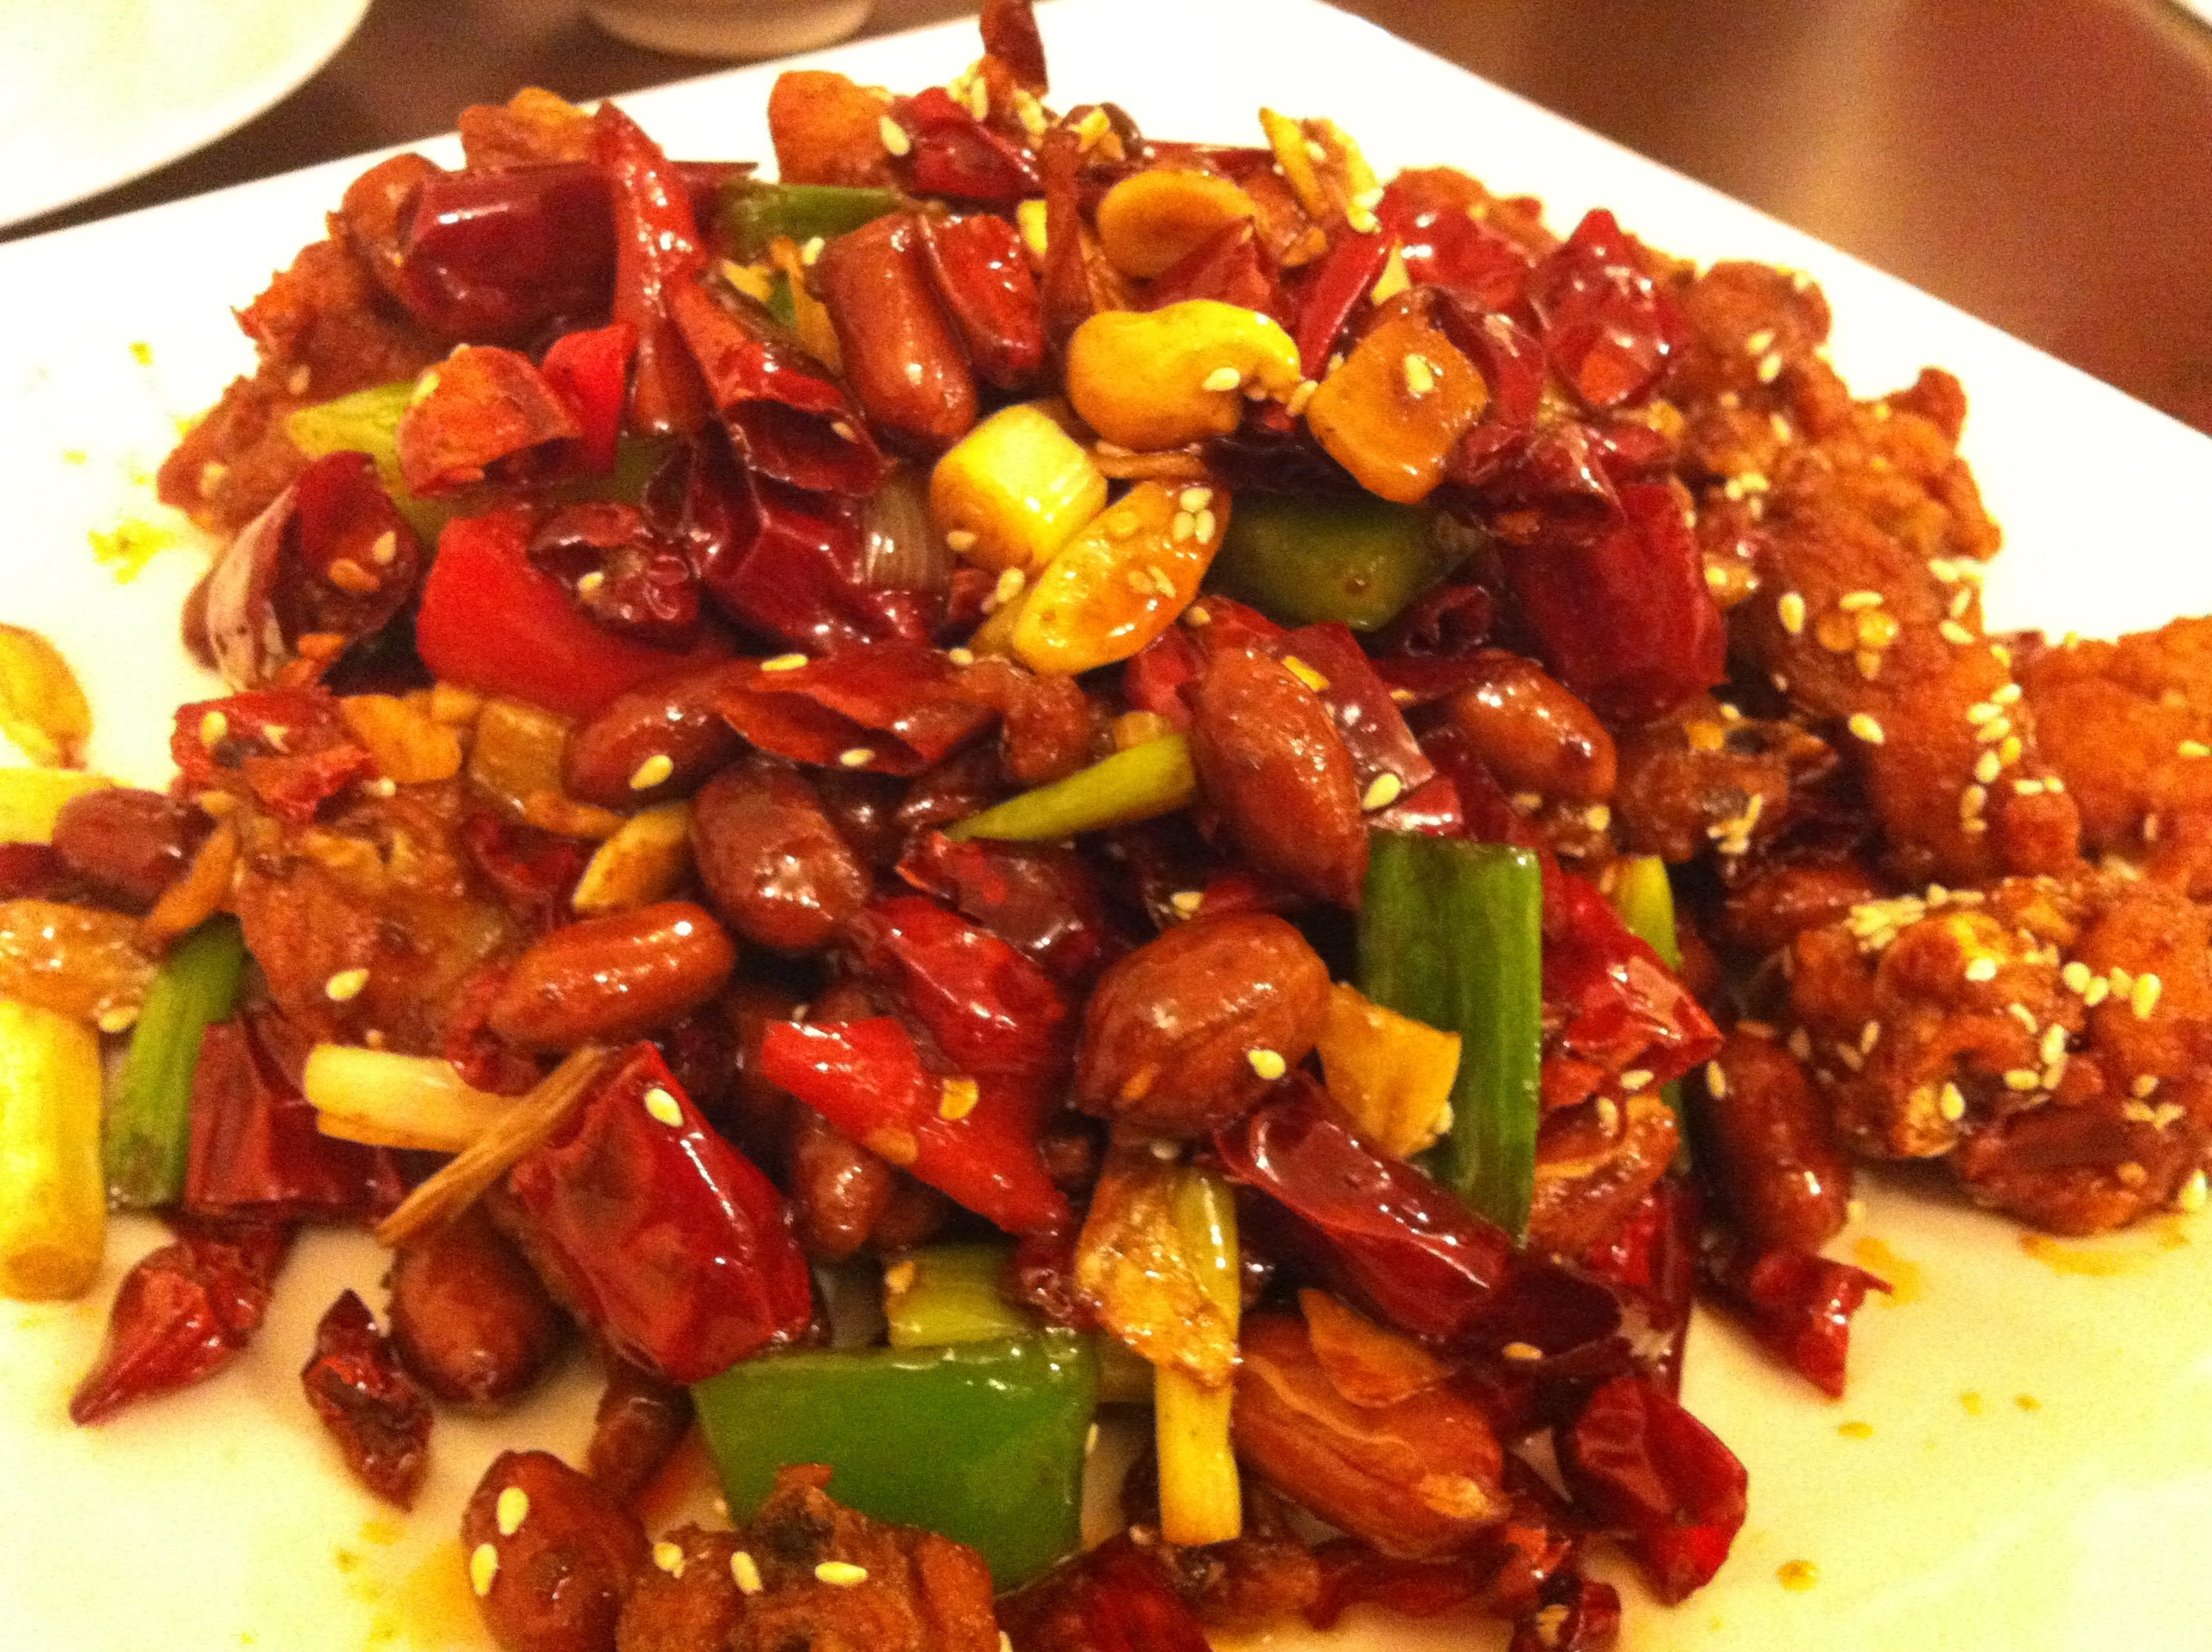 spicy food – Whys and Wherefores